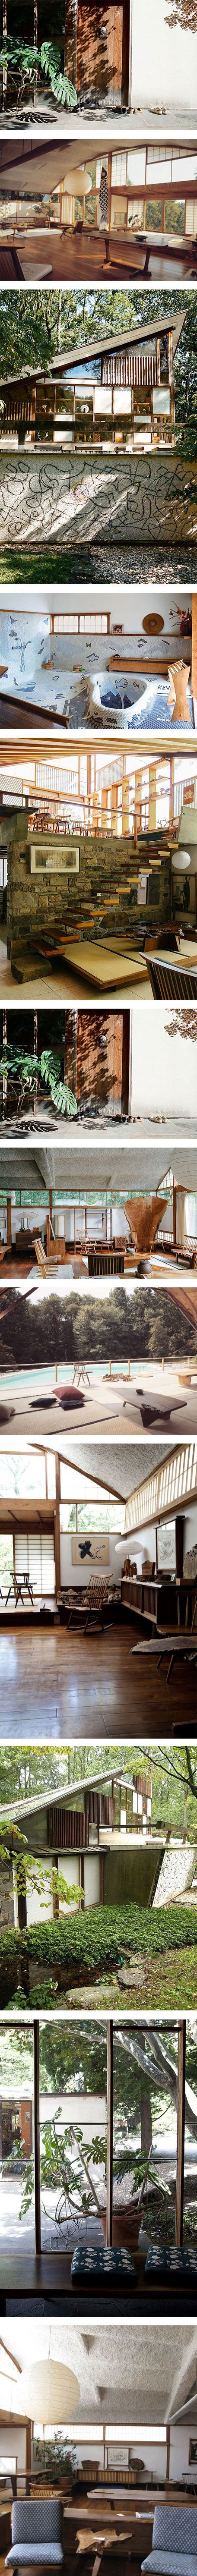 George Nakashima's Pennsylvanian estate featuring Furniture on Nuji.com #georgenakashima #architecture #pennsylvania